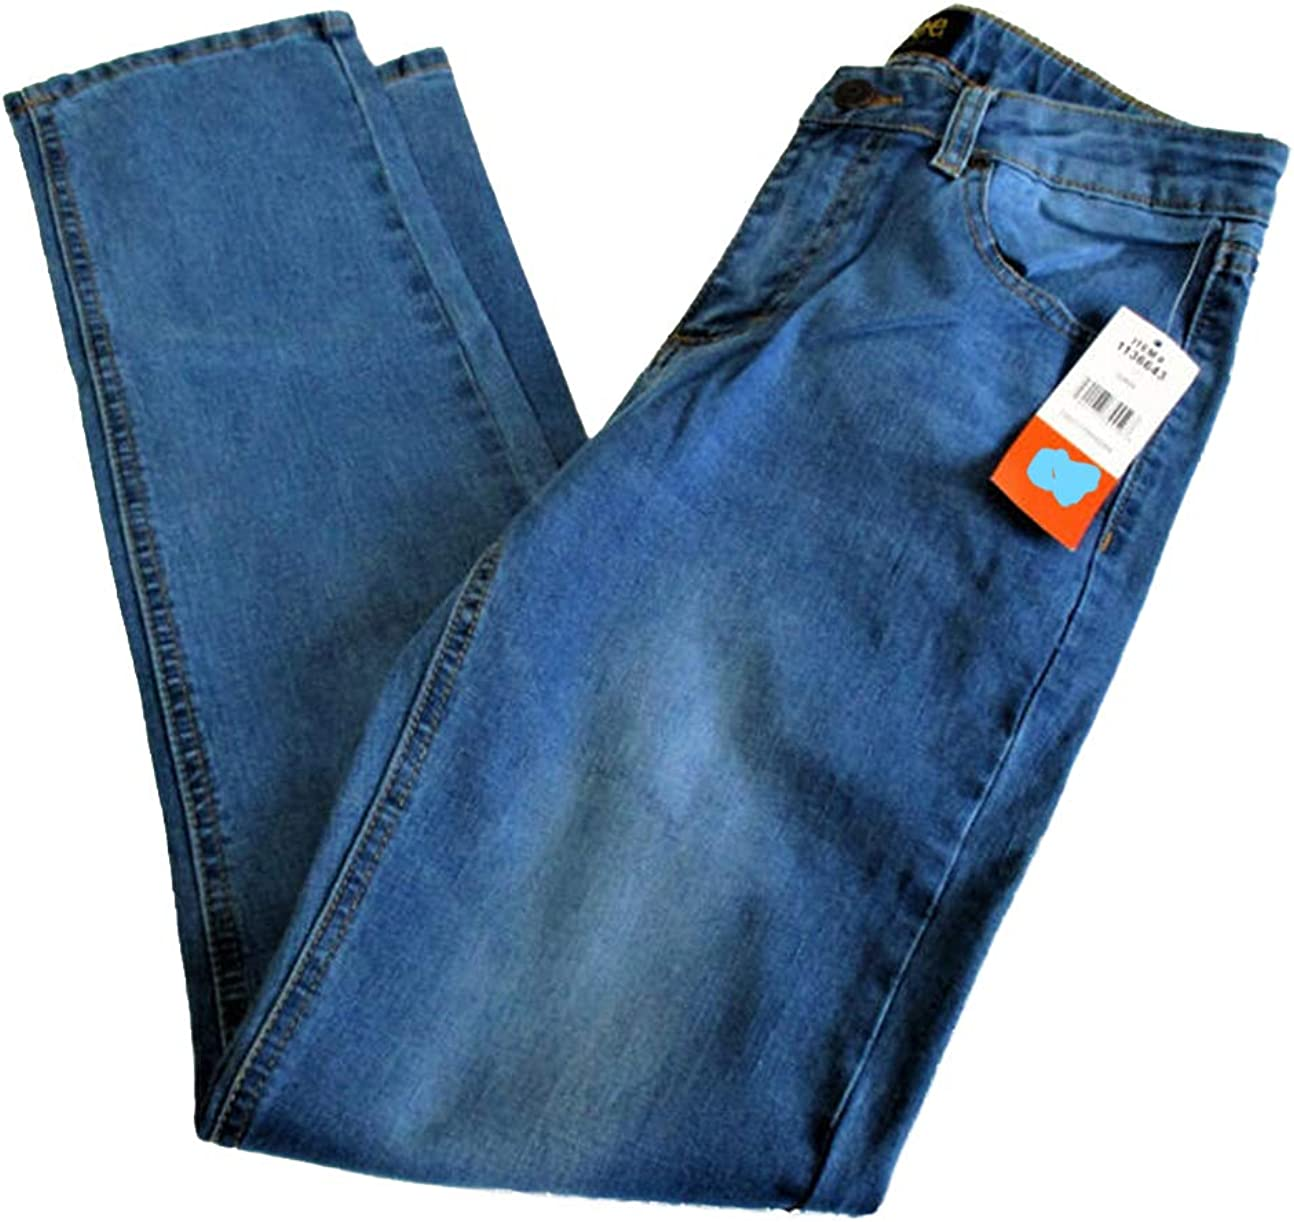 New Lee Boys Straight Leg Performance Strecth Jeans Light Wash Size Color Blue. 10